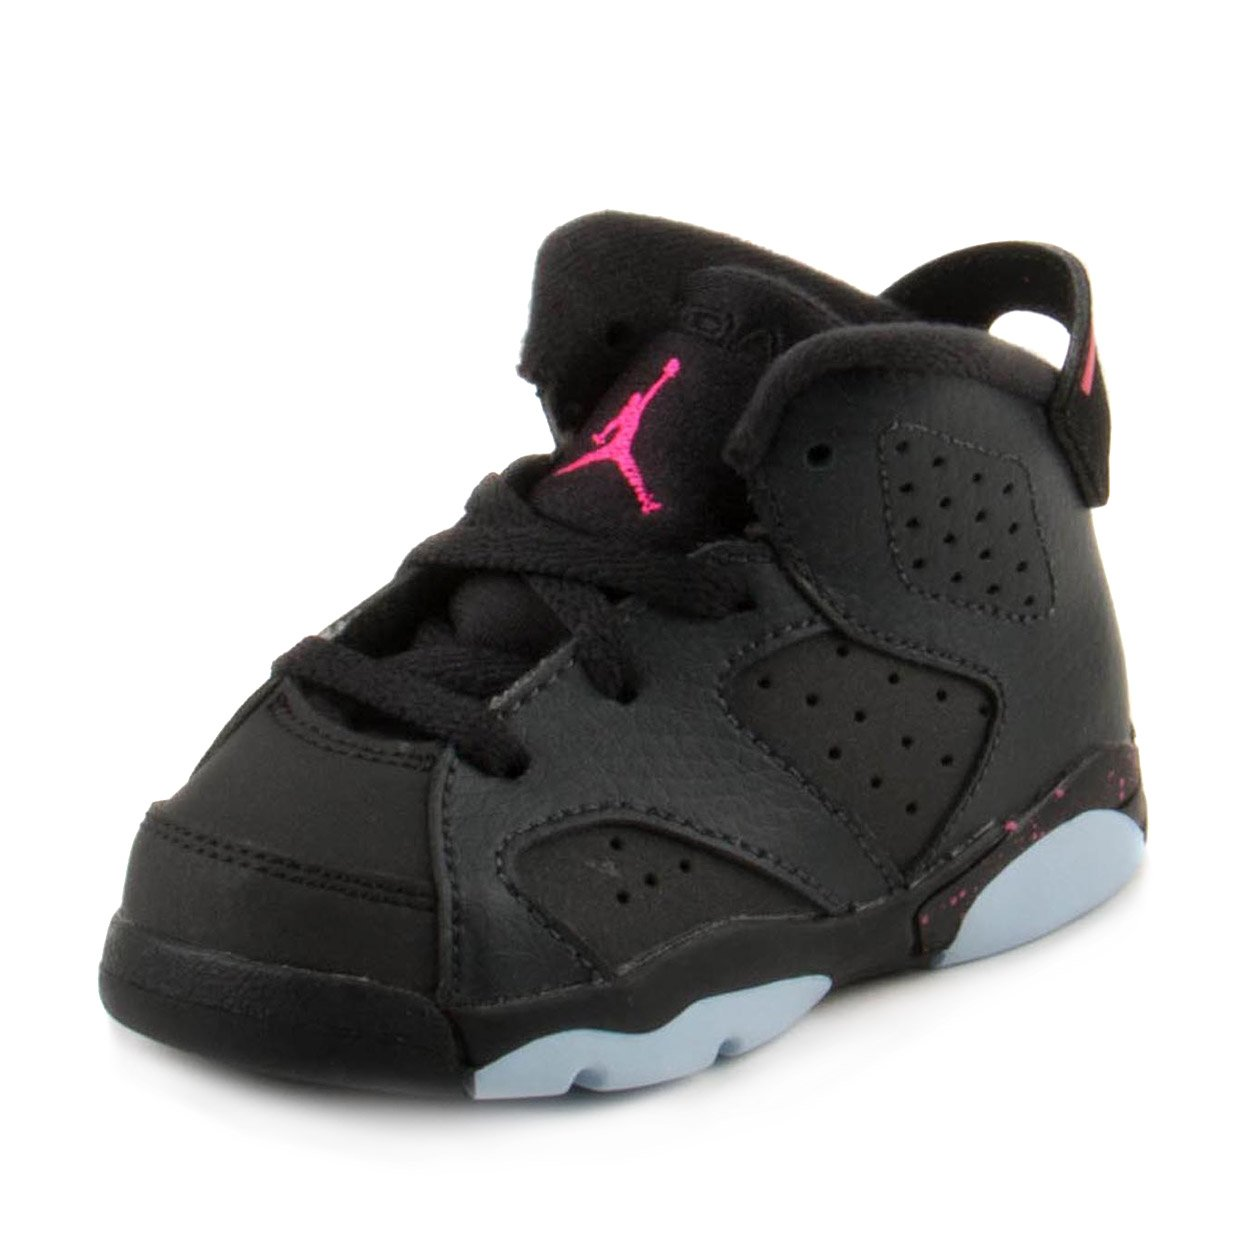 Nike Baby Girls Jordan 6 Retro GT Anthracite/Black Leather Size 5C by Jordan